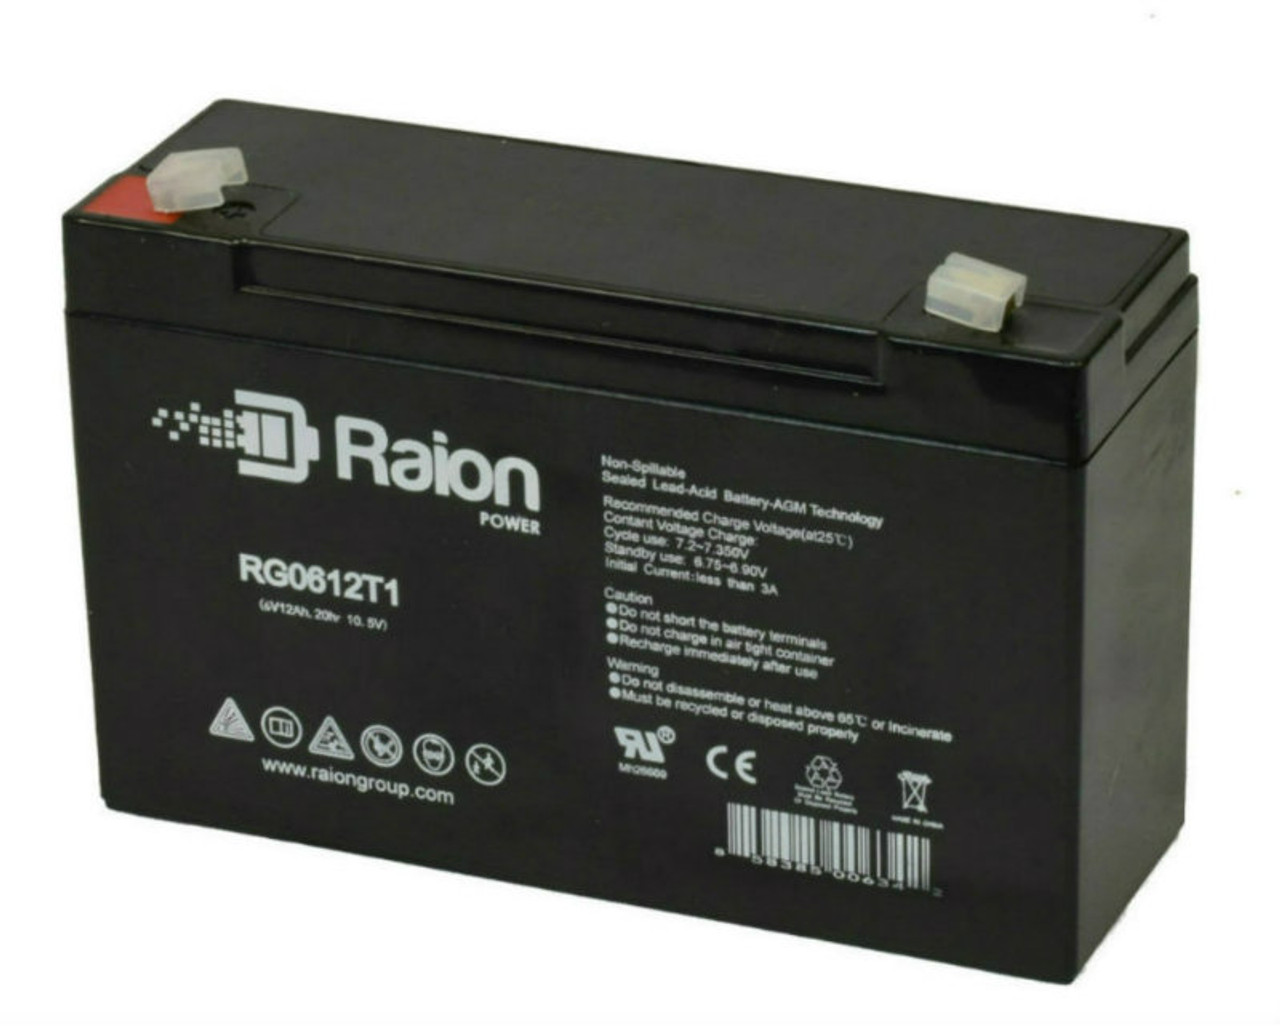 Raion Power RG06120T1 Replacement Battery Pack for Sonnenschein 2004 emergency light